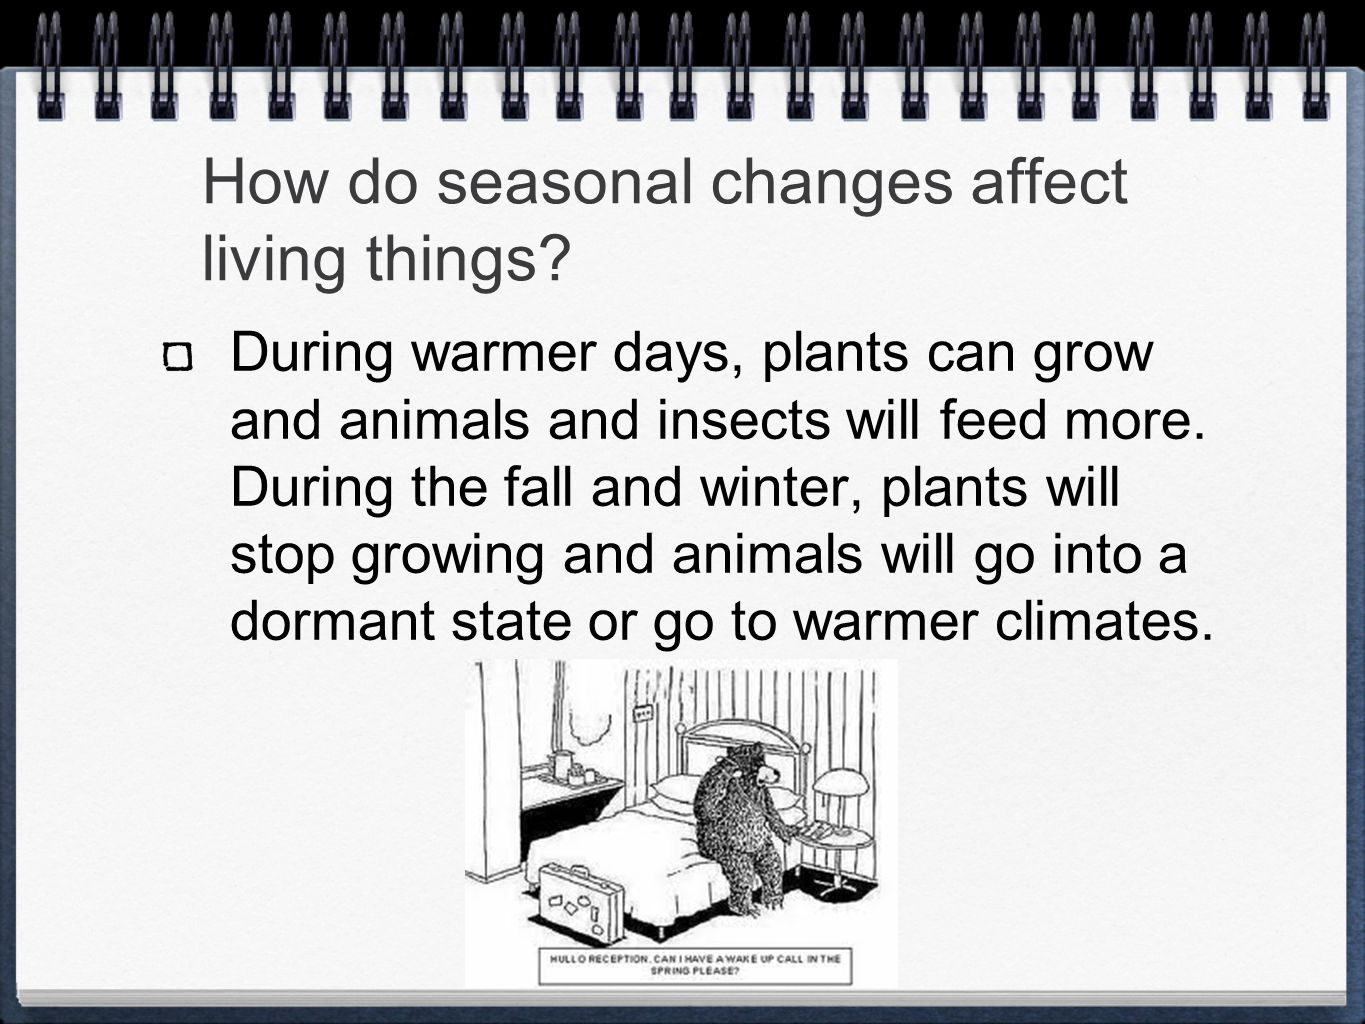 How do seasonal changes affect living things? During warmer days, plants can grow and animals and insects will feed more. During the fall and winter,